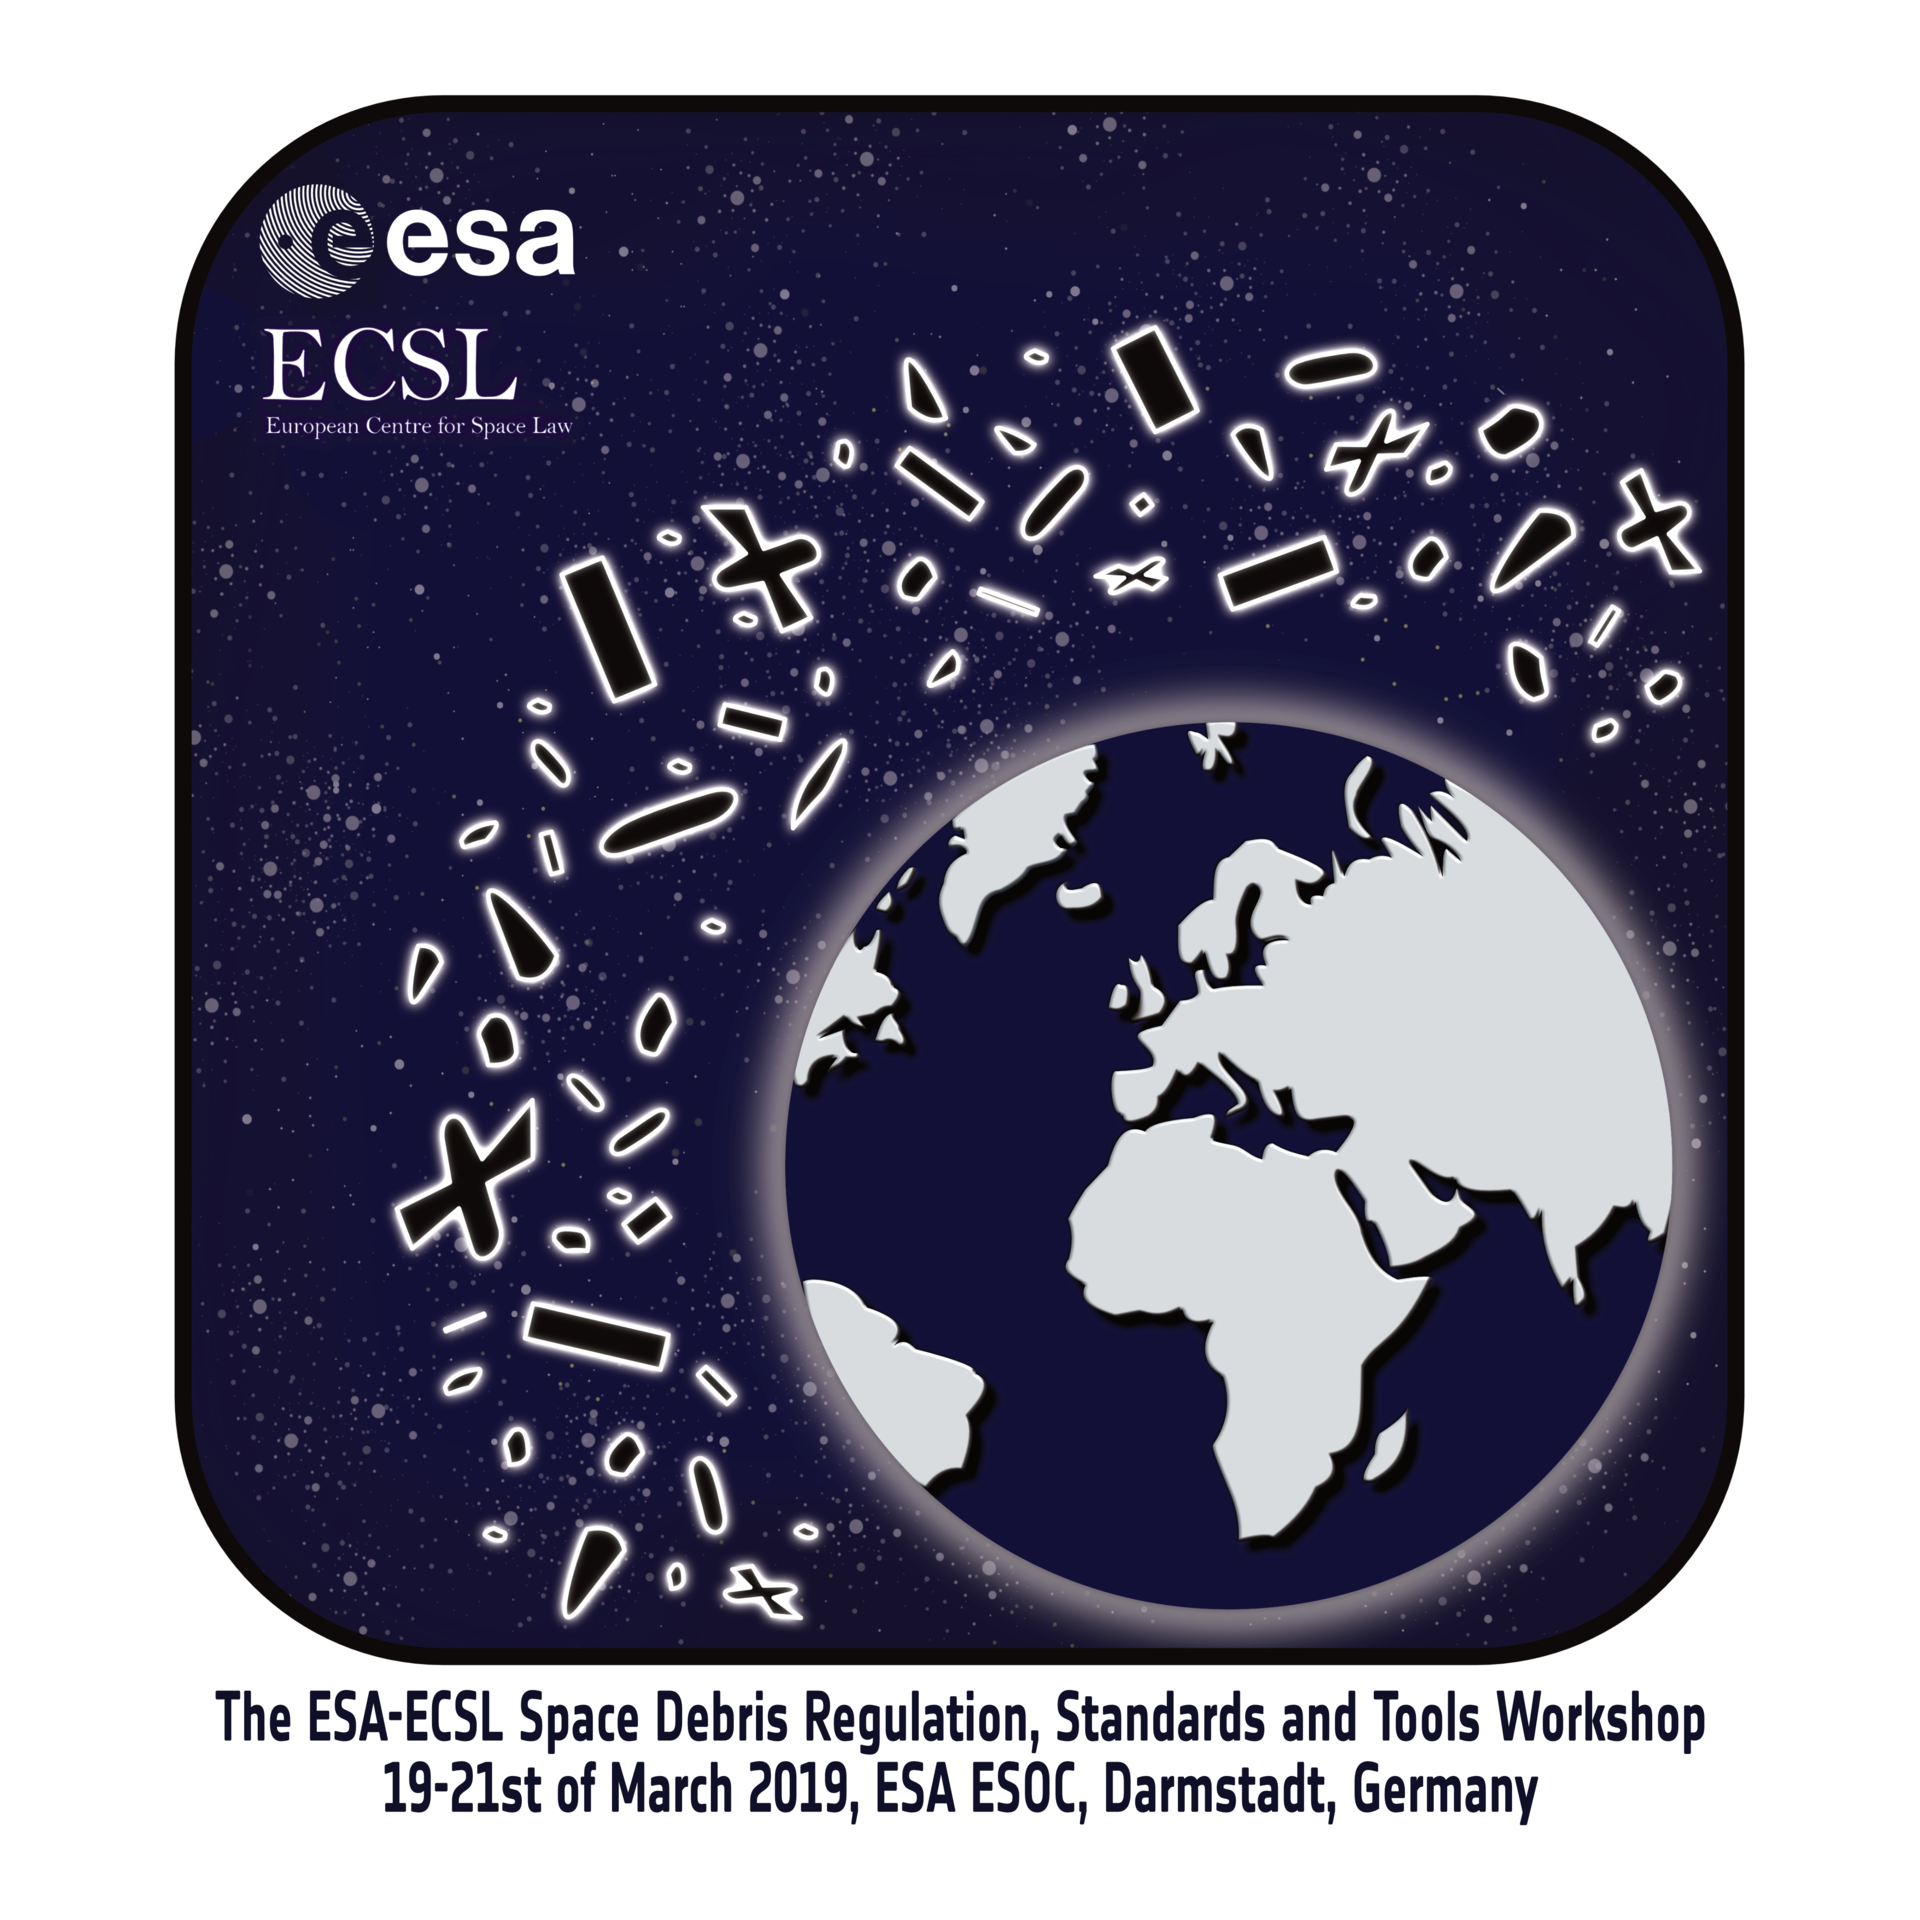 ESA-ECSL Workshop on Space Debris